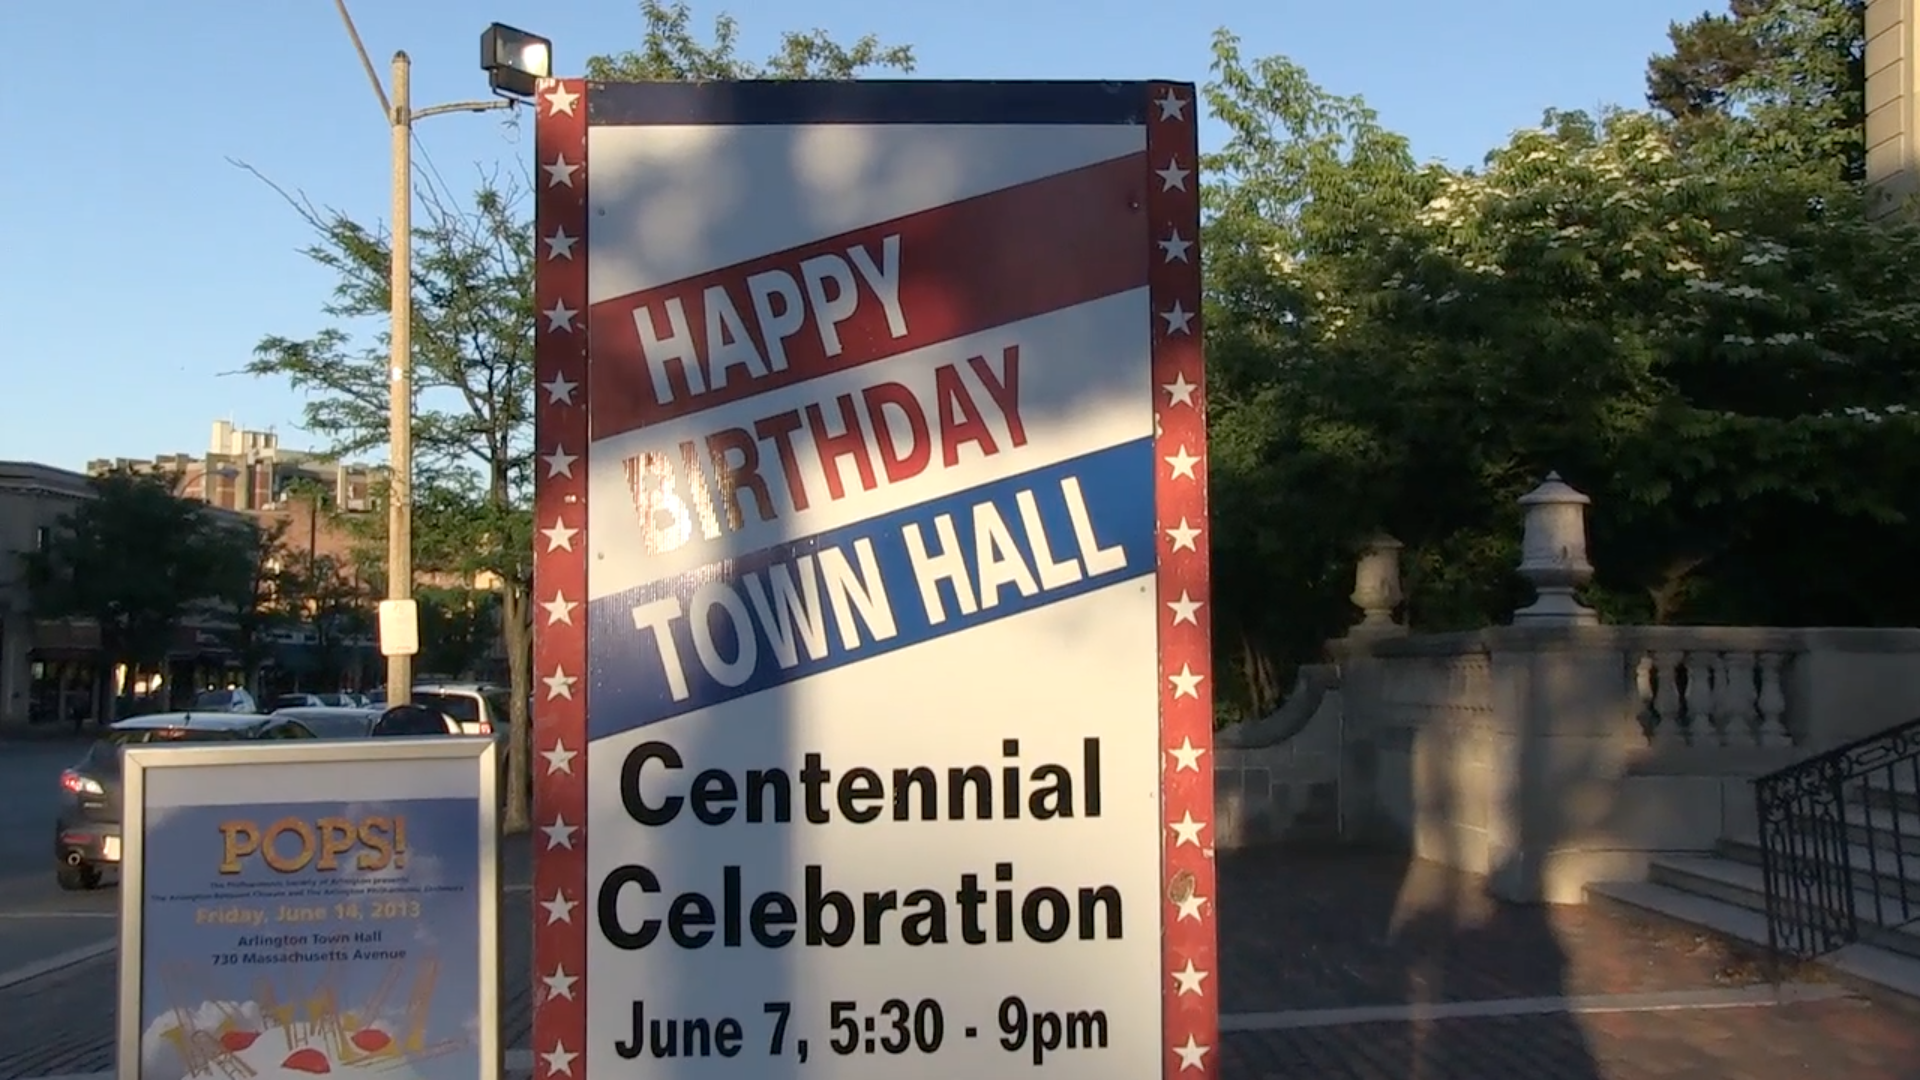 Town Hall turns 100